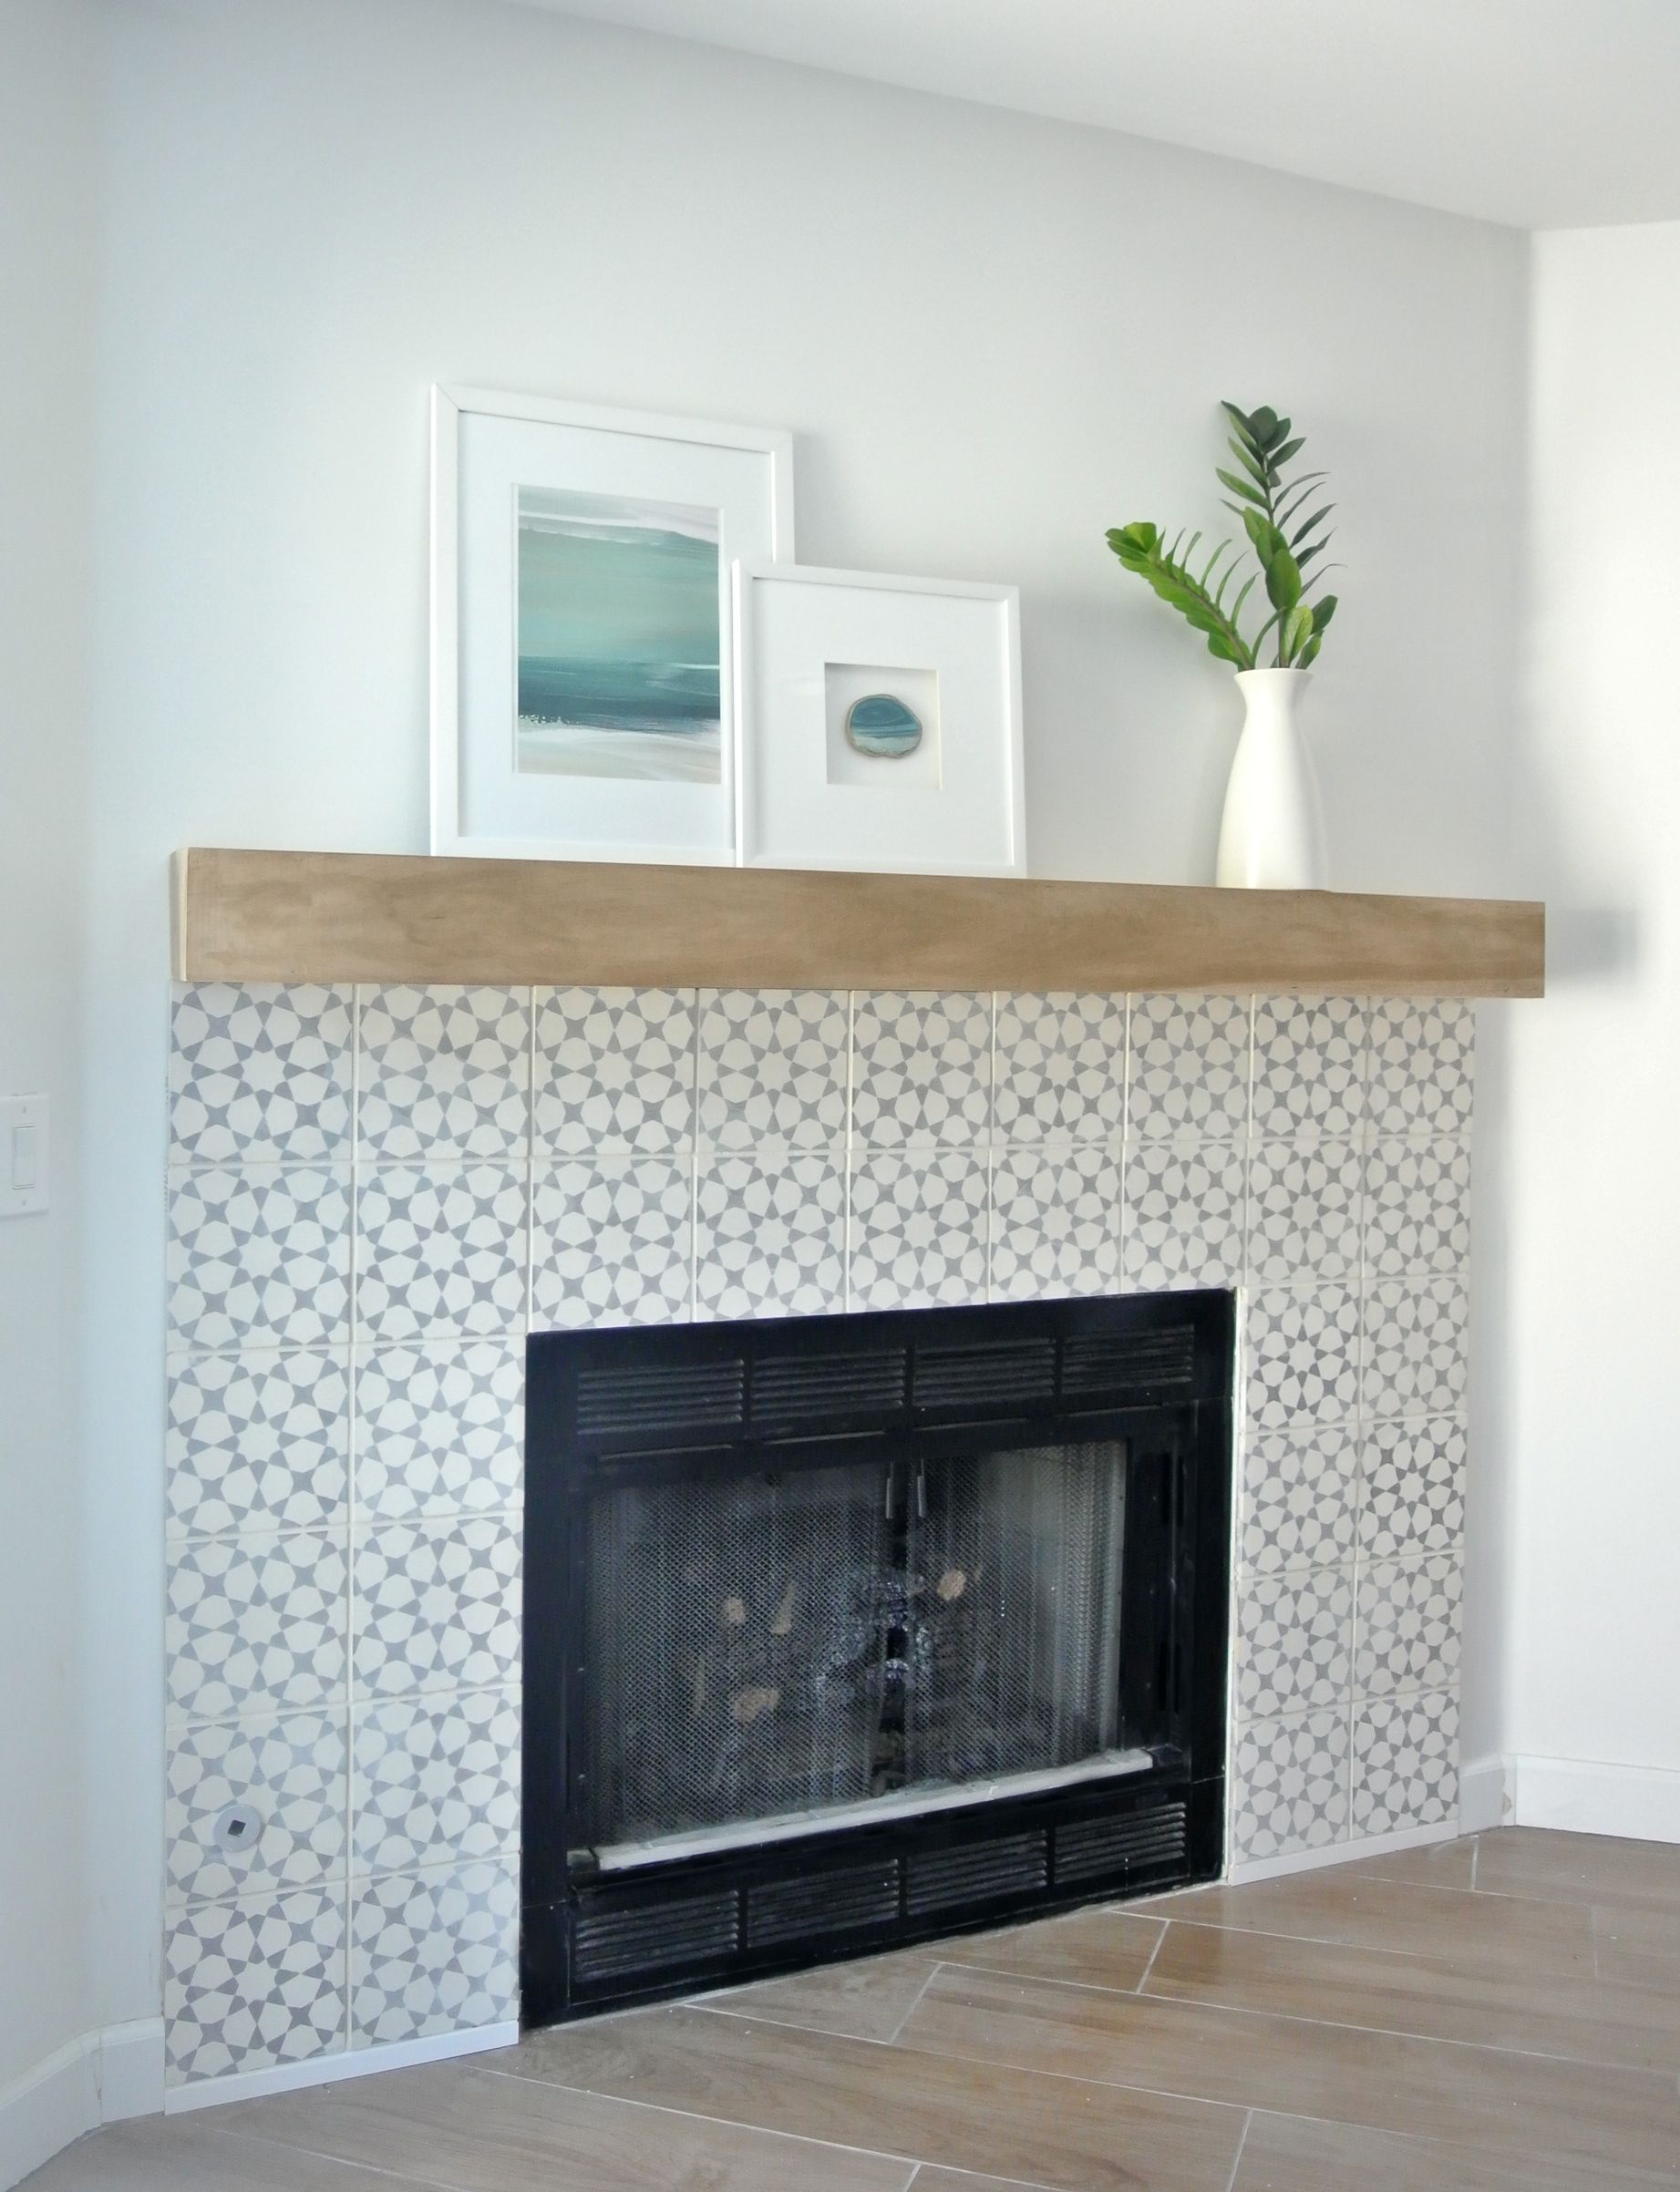 Diy Fireplace Makeover Centsational Style Diy Fireplace